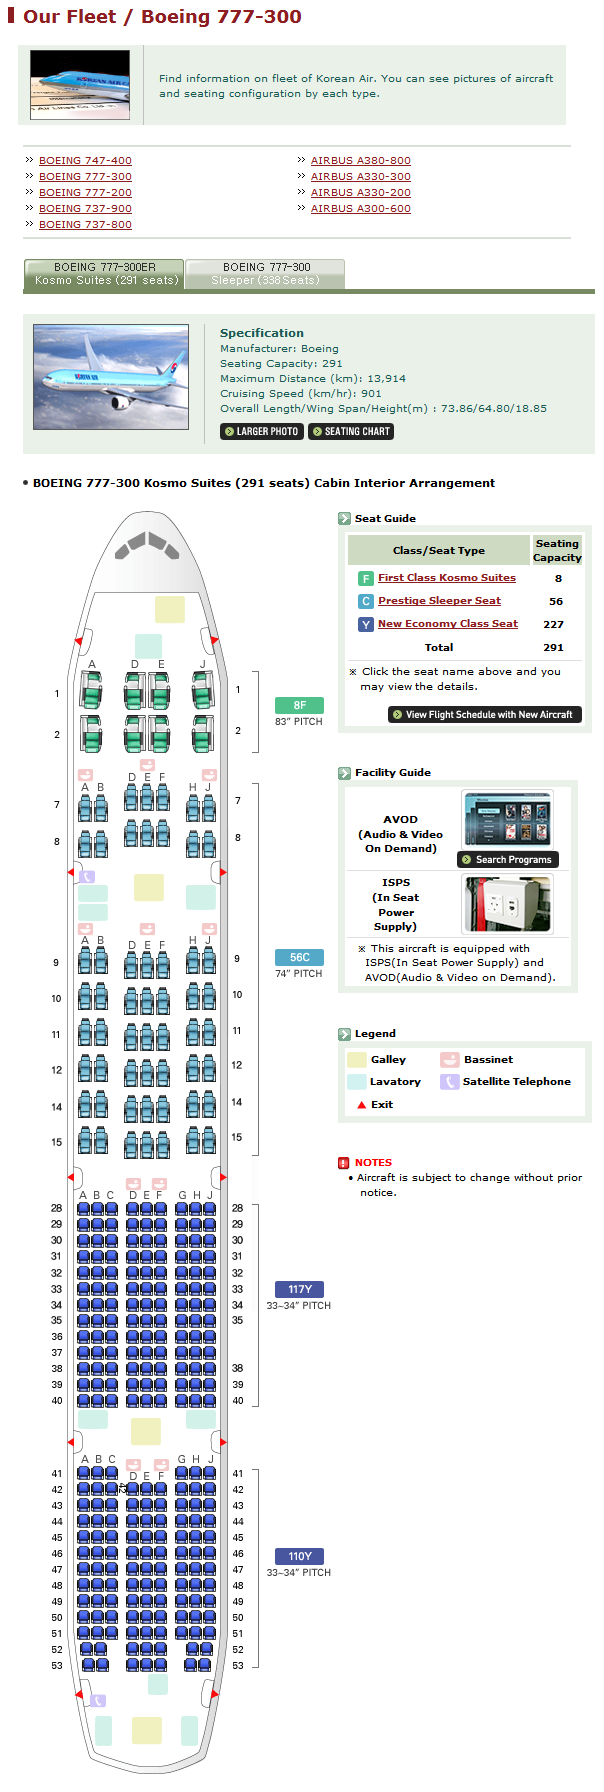 KOREAN AIR AIRLINES BOEING 777-300 AIRCRAFT SEATING CHART